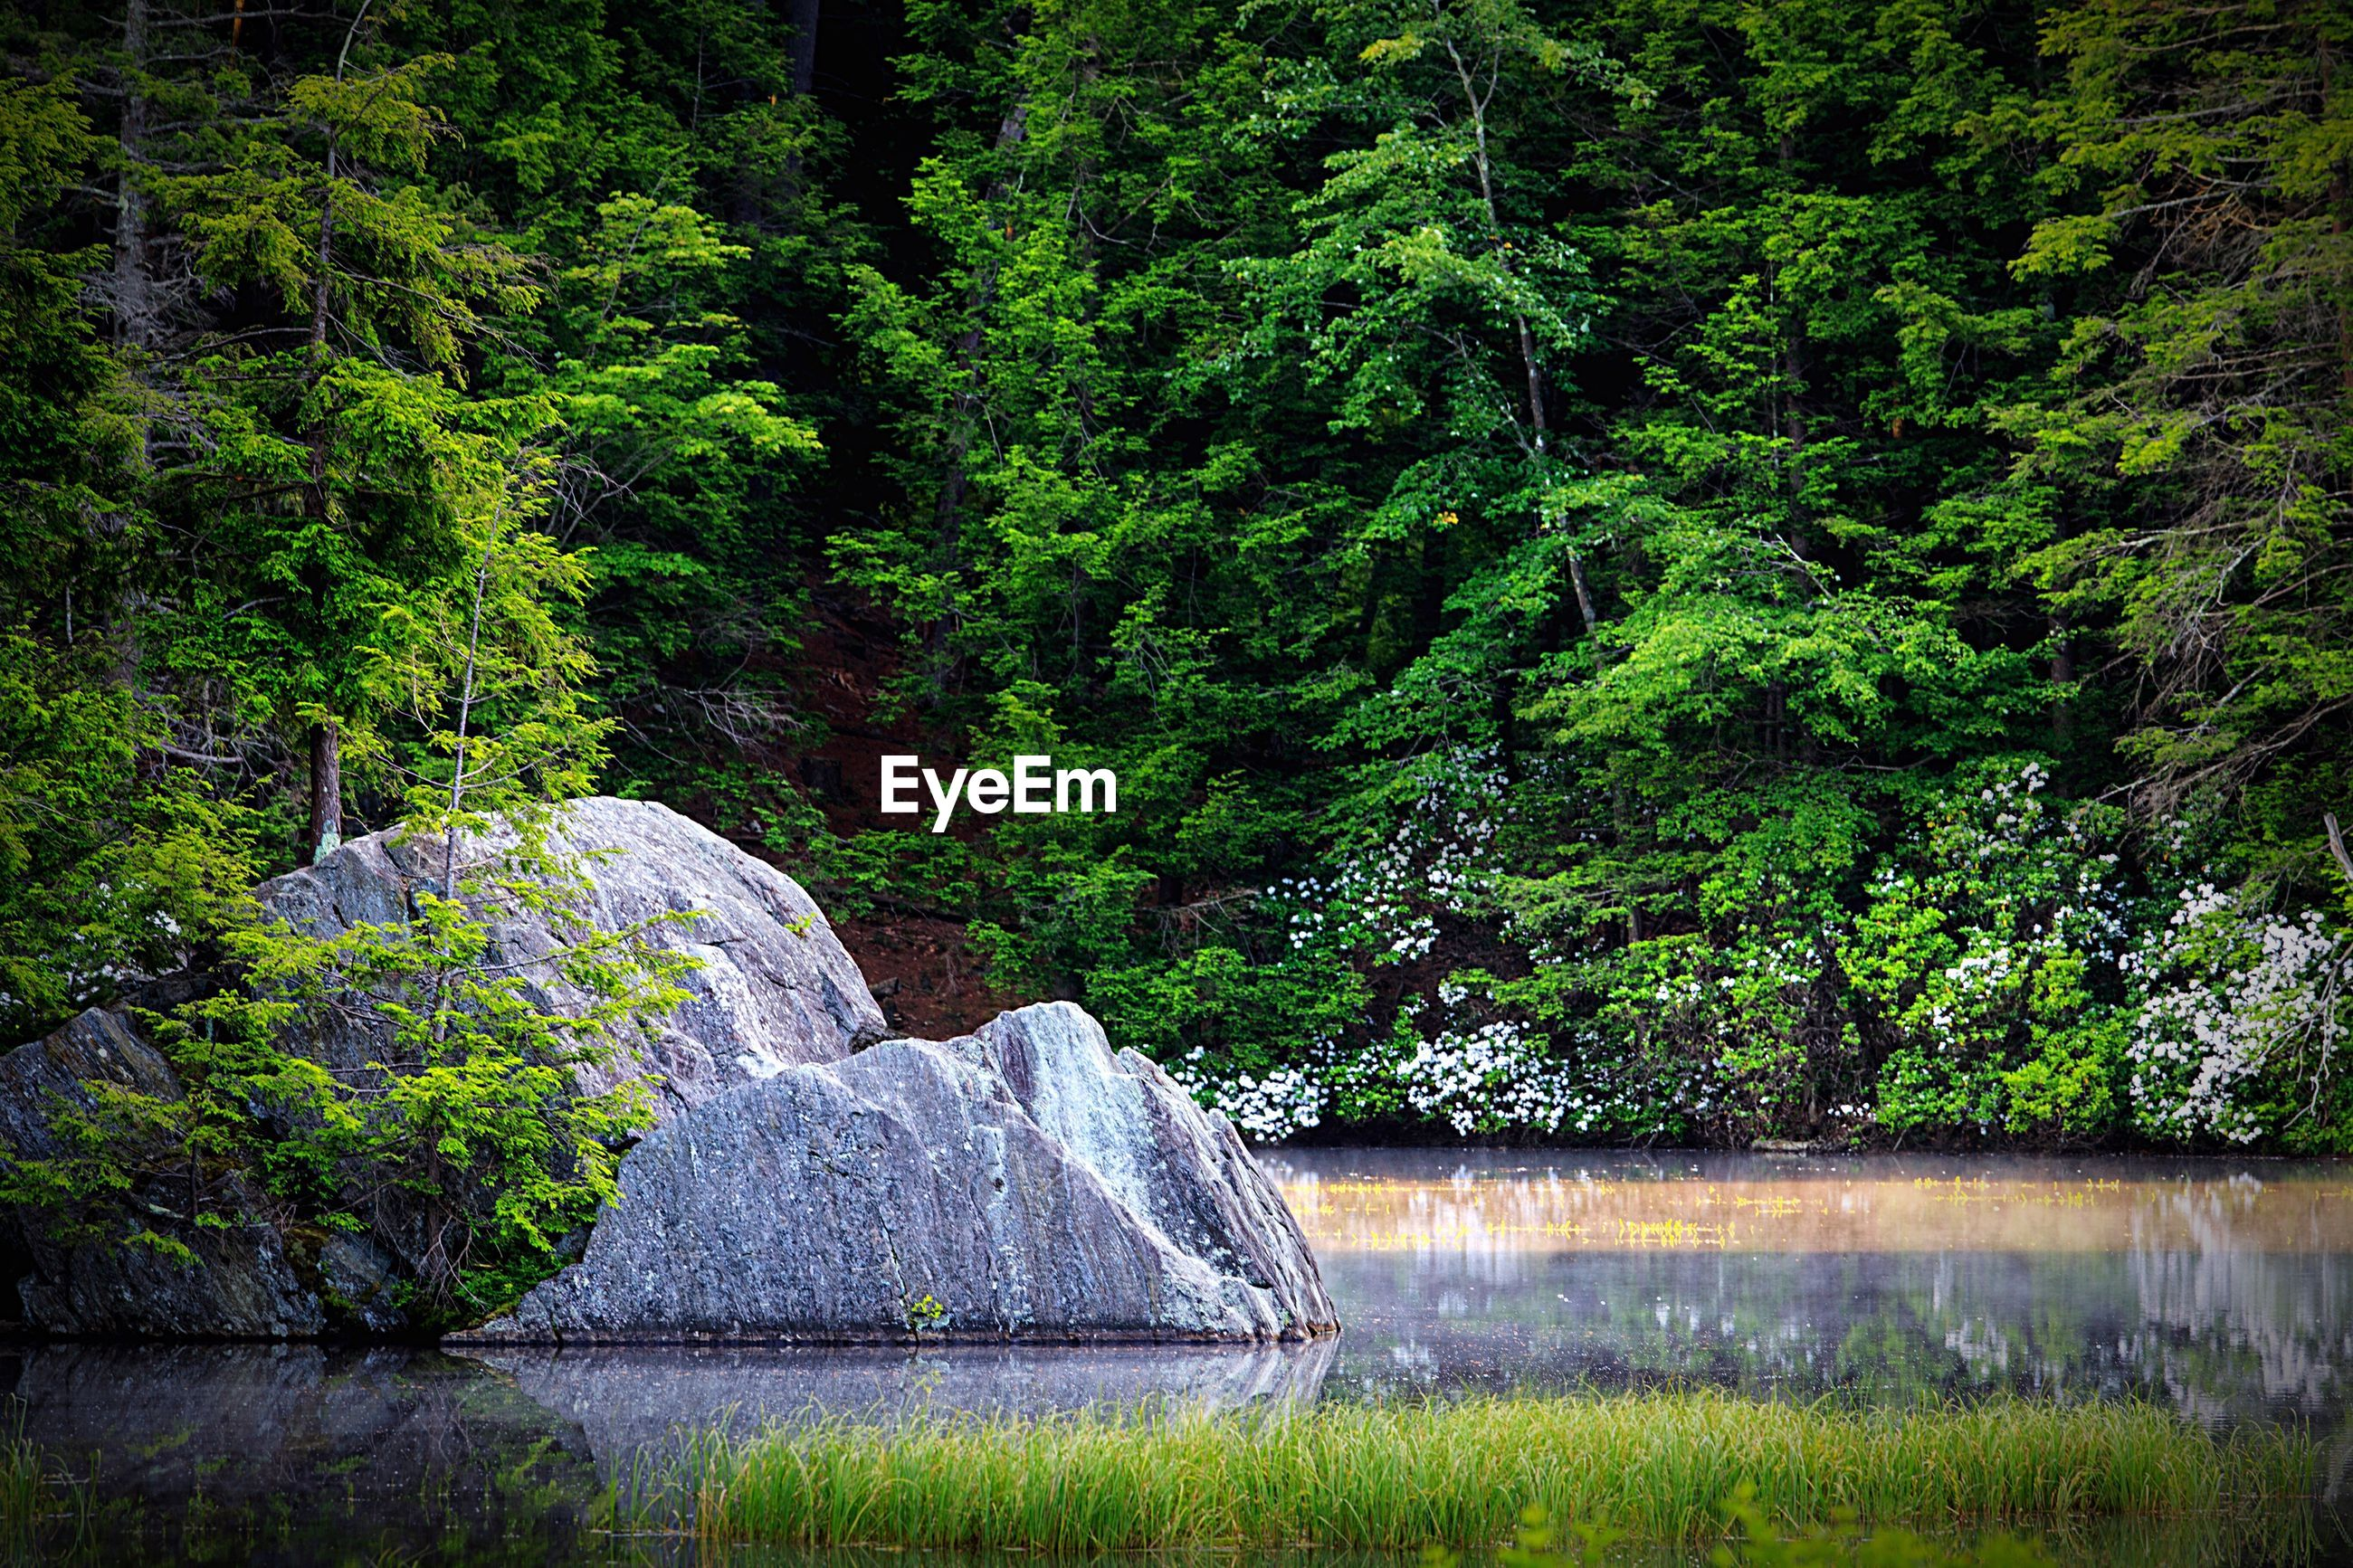 tree, water, growth, green color, plant, nature, tranquility, beauty in nature, park - man made space, lush foliage, day, tranquil scene, rock - object, outdoors, scenics, green, fountain, forest, formal garden, no people